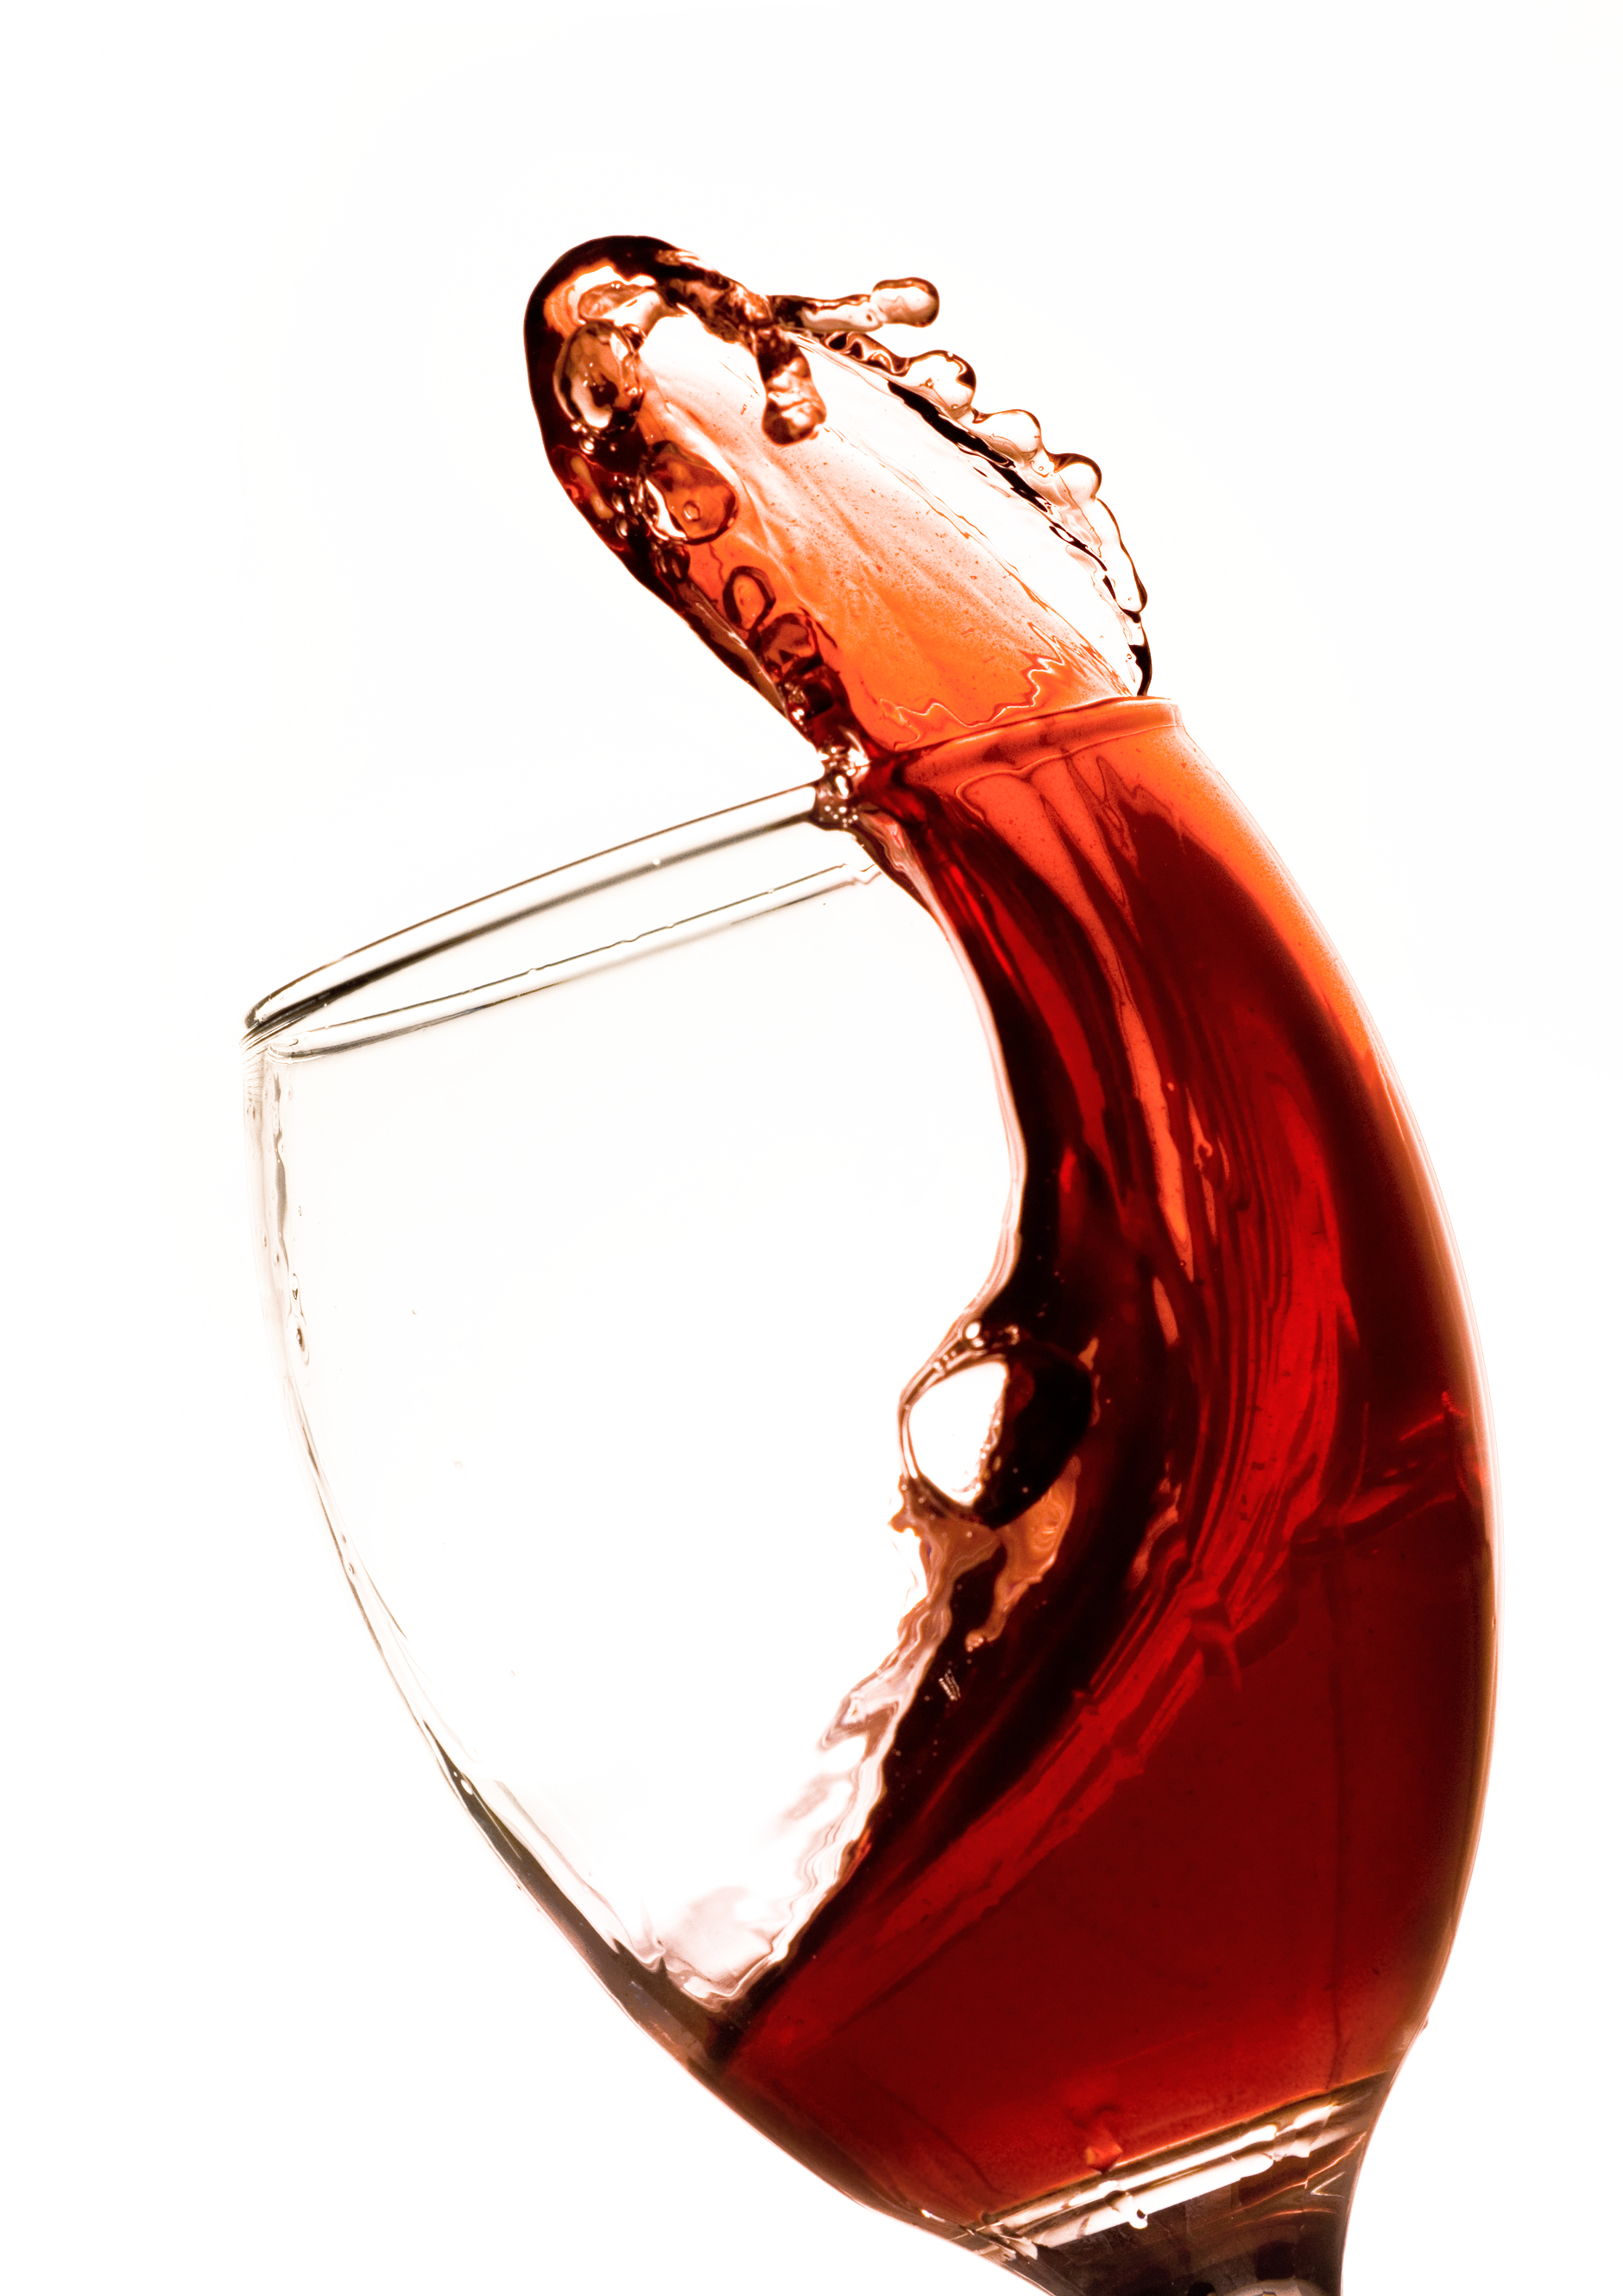 Download this high resolution Wine Transparent PNG Image